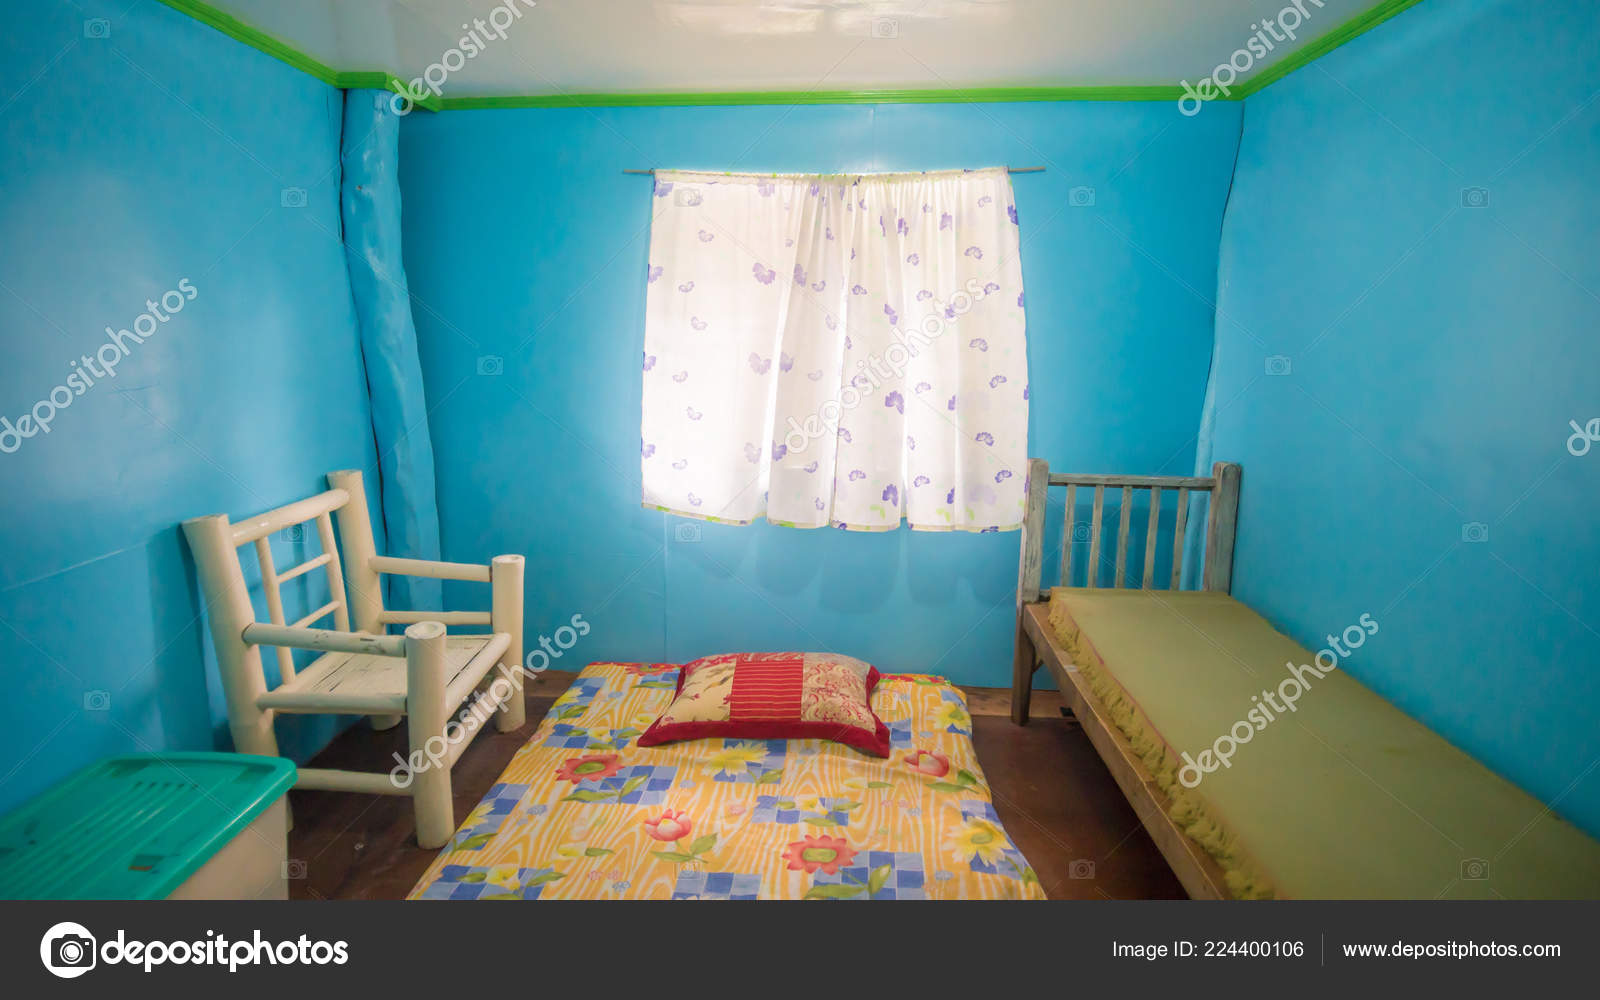 Filipino House Interior Design The Room In The Philippine House Is Rented Out For Foreigners Stock Photo C Milk Records Bk Ru 224400106